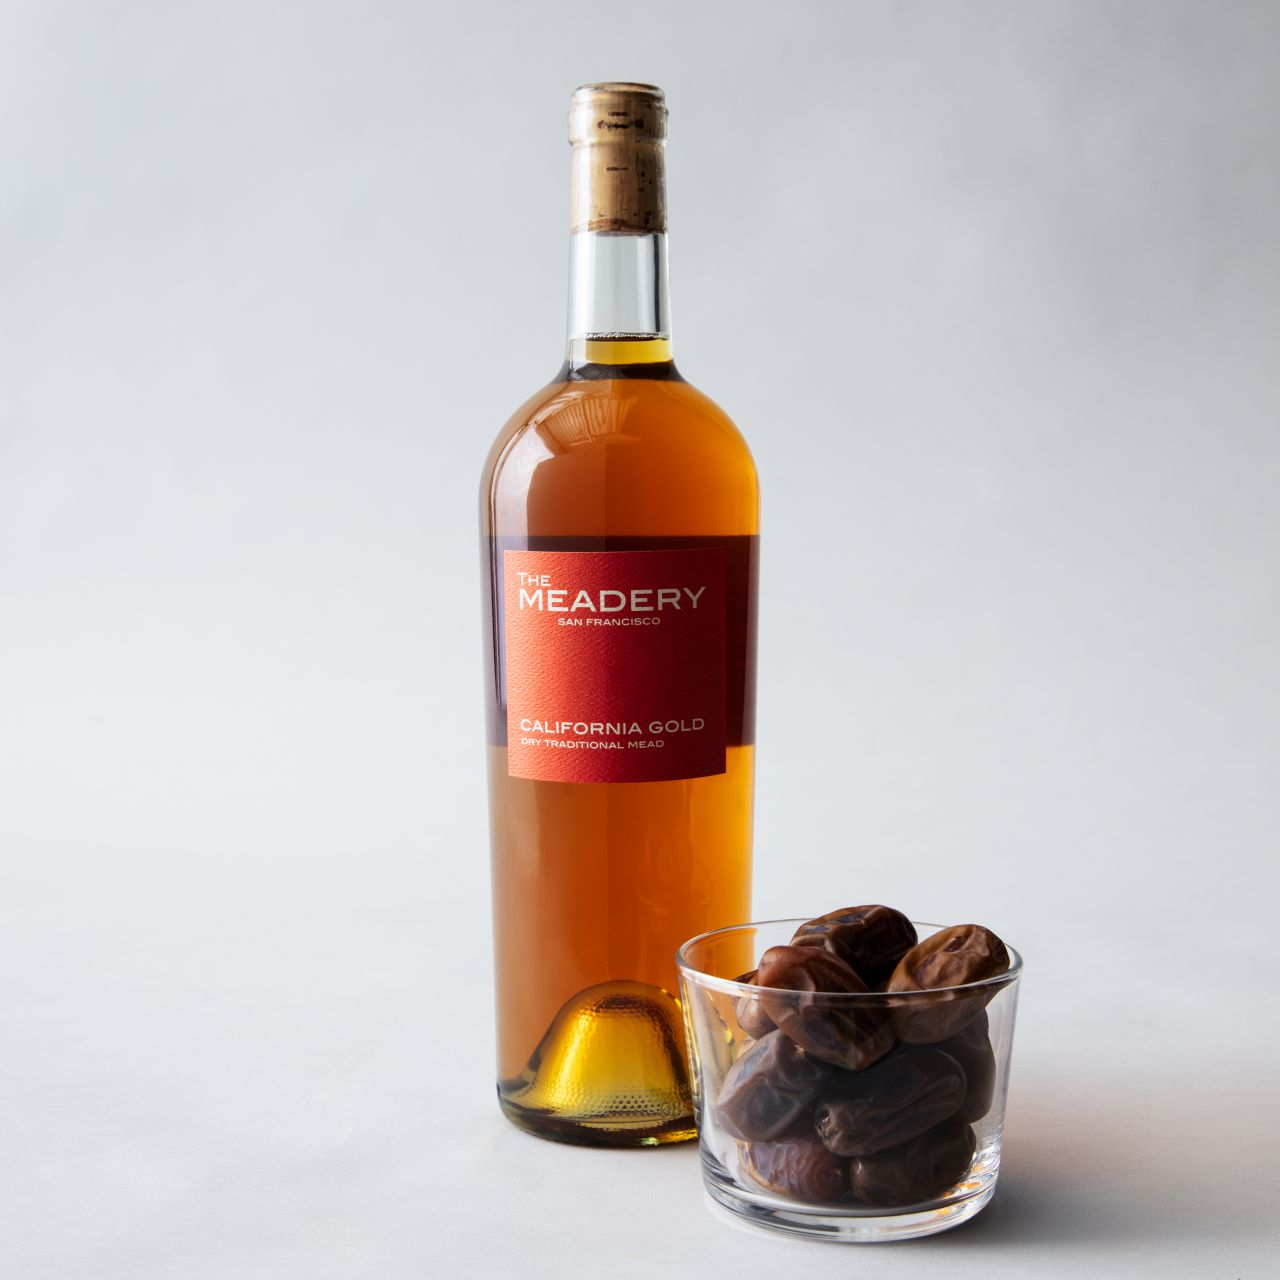 california-grown-dates-and-wine-pairings-amber-sf-mead-company-california-gold.jpg